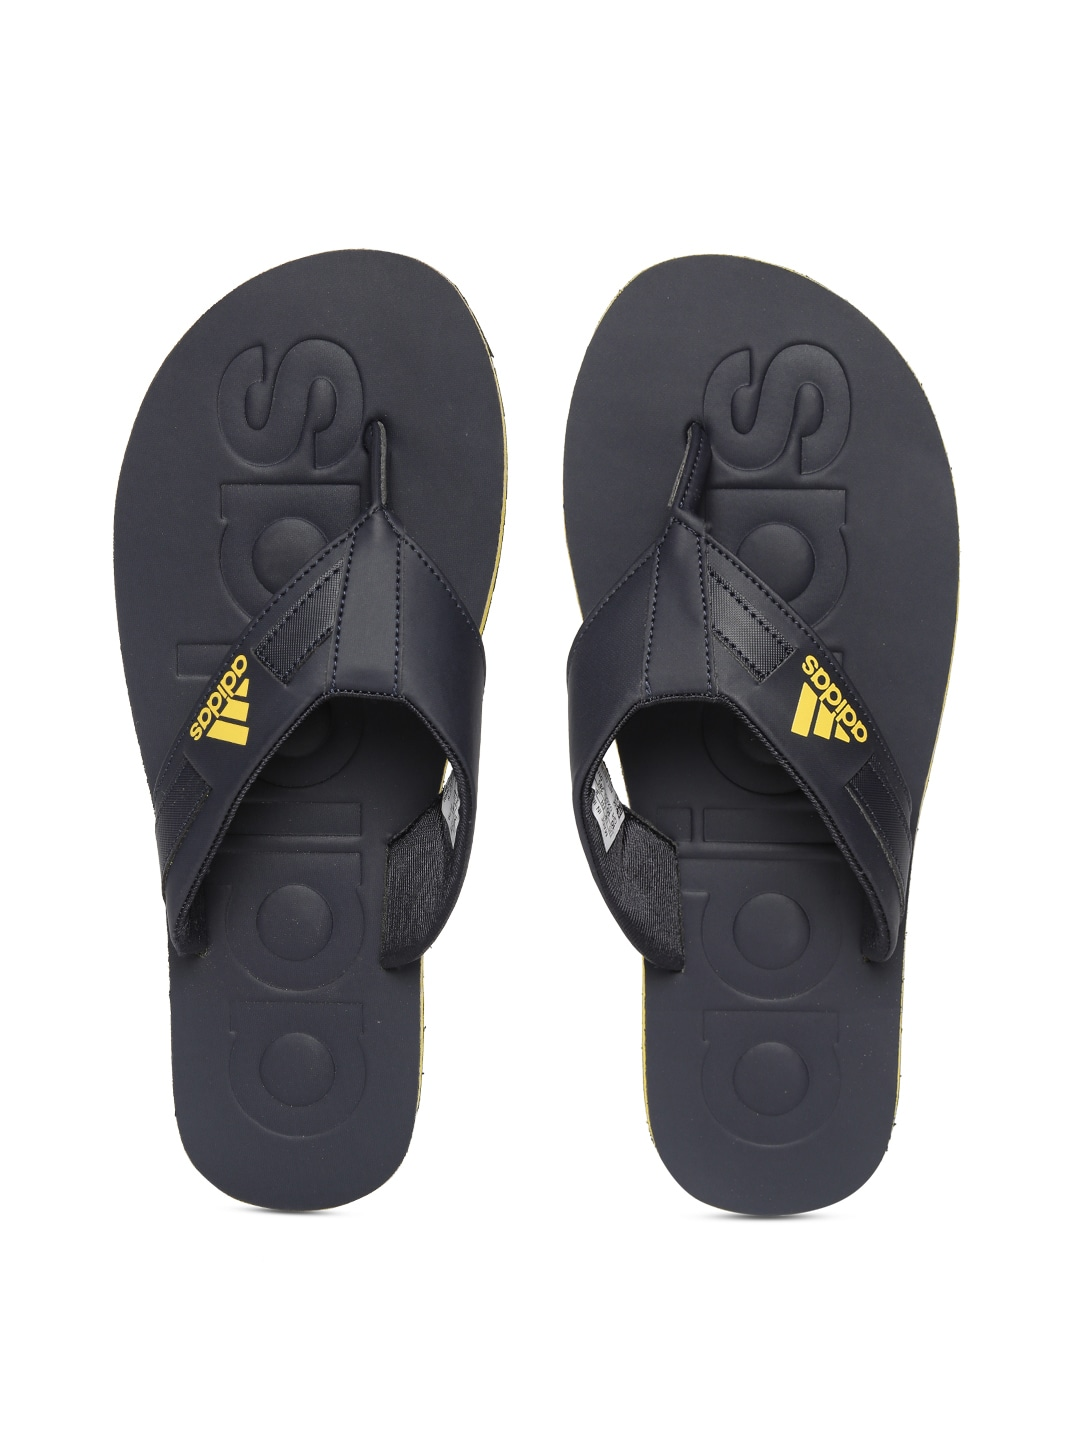 95eceab08 Men s Adidas Flip Flops - Buy Adidas Flip Flops for Men Online in India